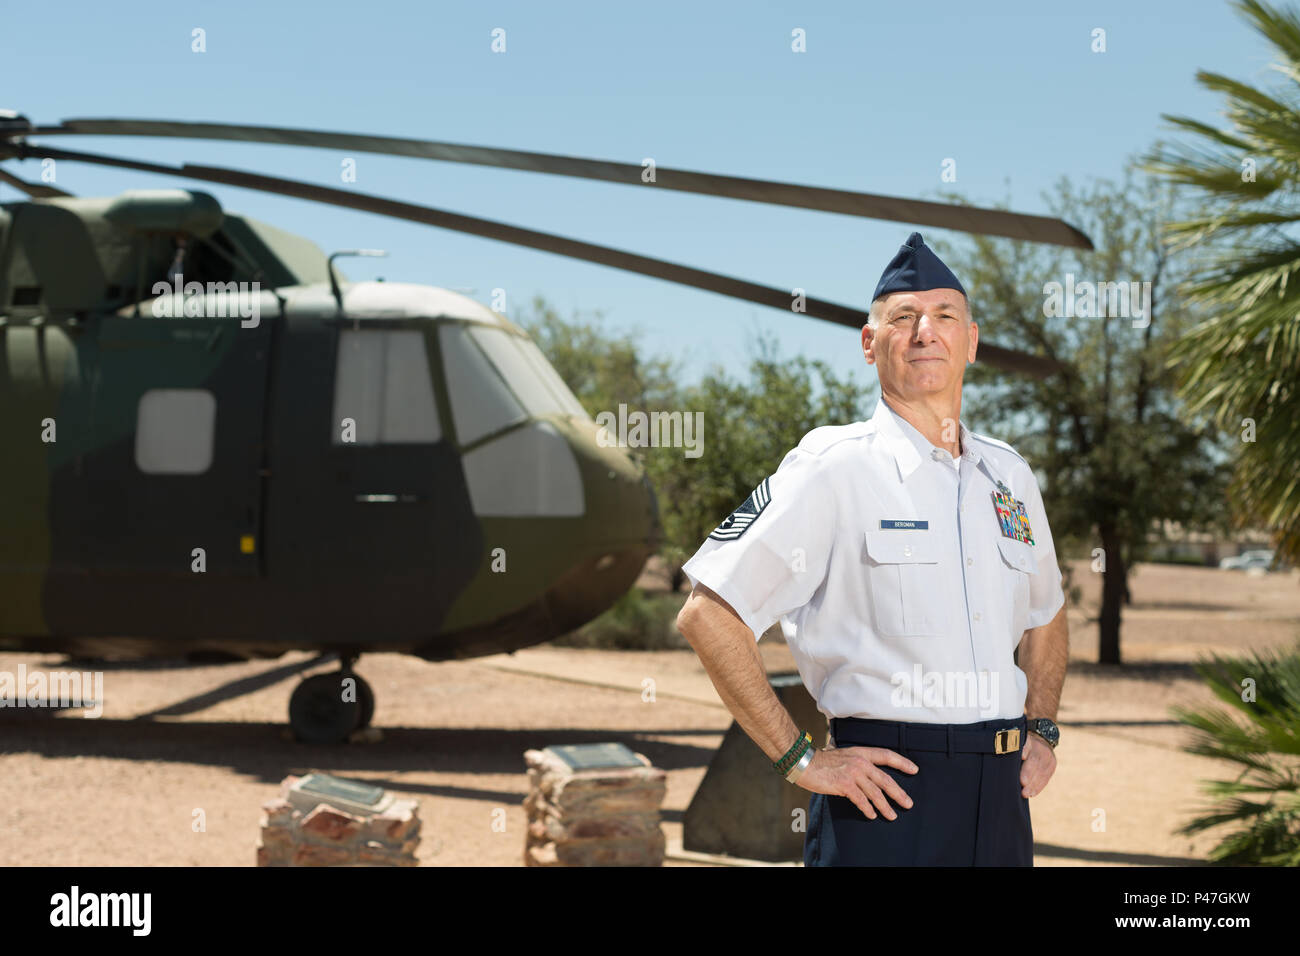 Chief Master Sgt. (ret.) Craig Bergman stands in front of the HH-3 'Jolly Green Giant' at Davis-Monthan Air Force Base, Ariz., May 19, 2016. Bergman retired as the maintenance superintendent for the 943rd Maintenance Squadron in 2007, having been one of five U.S. Air Force Reserve Airmen to establish the 71st Special Operations Squadron and bring the HH-3 here. His family's military legacy dates back to World War I. (U.S. Air Force photo by Tech. Sgt. Carolyn Herrick) - Stock Image